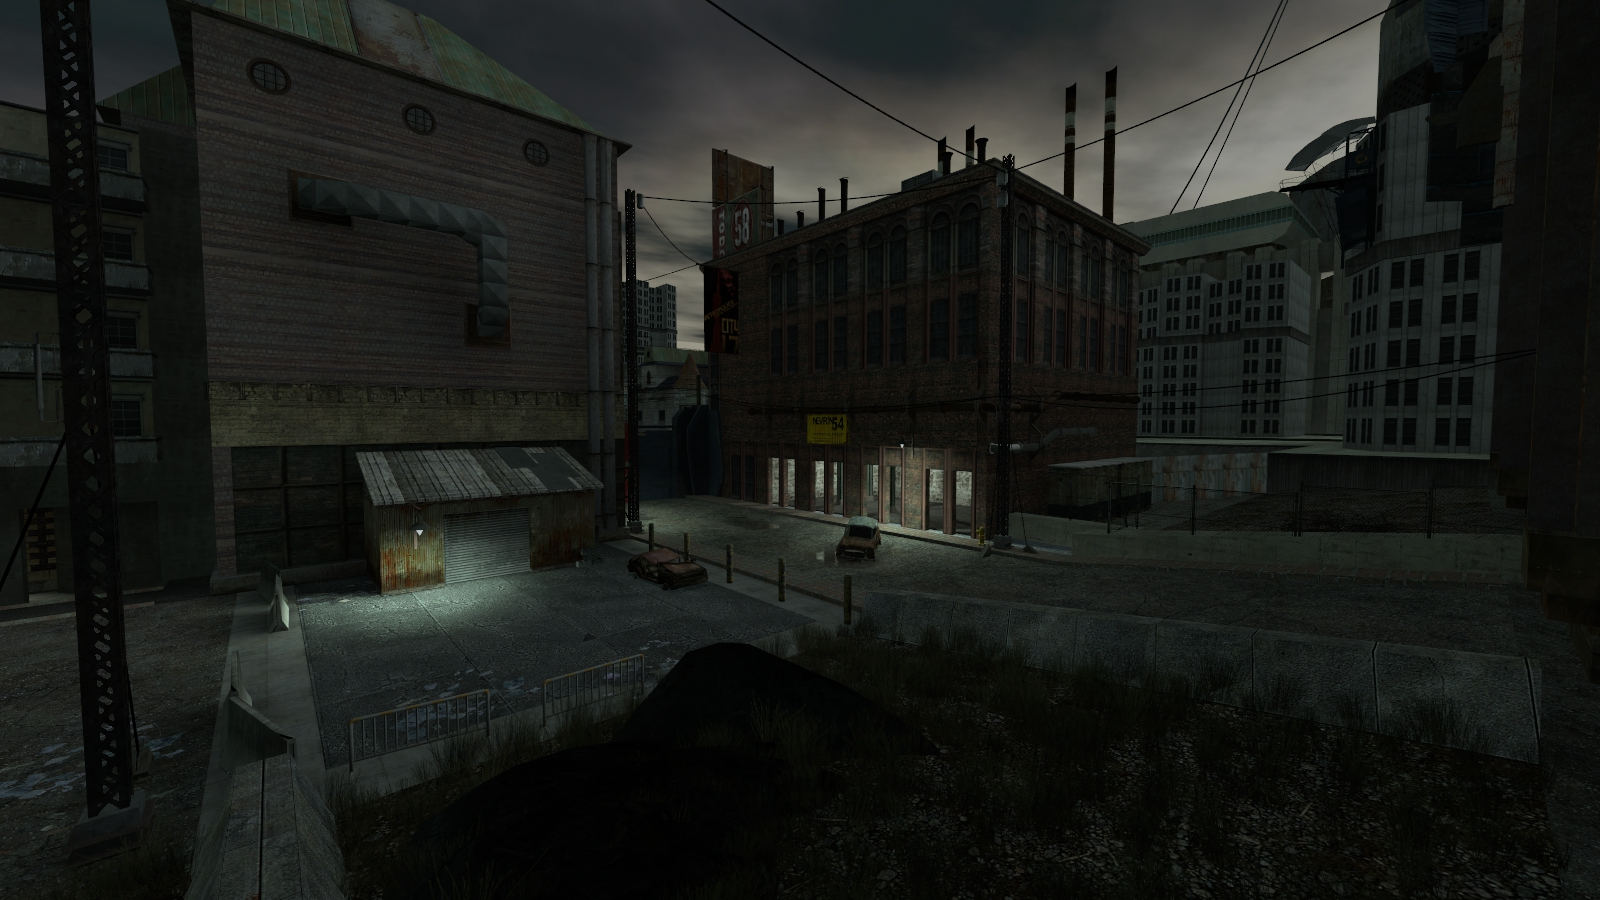 Half-Life 2. Dark Interval [MOD] - Half-Life 2 Арт, Моды, Скриншот